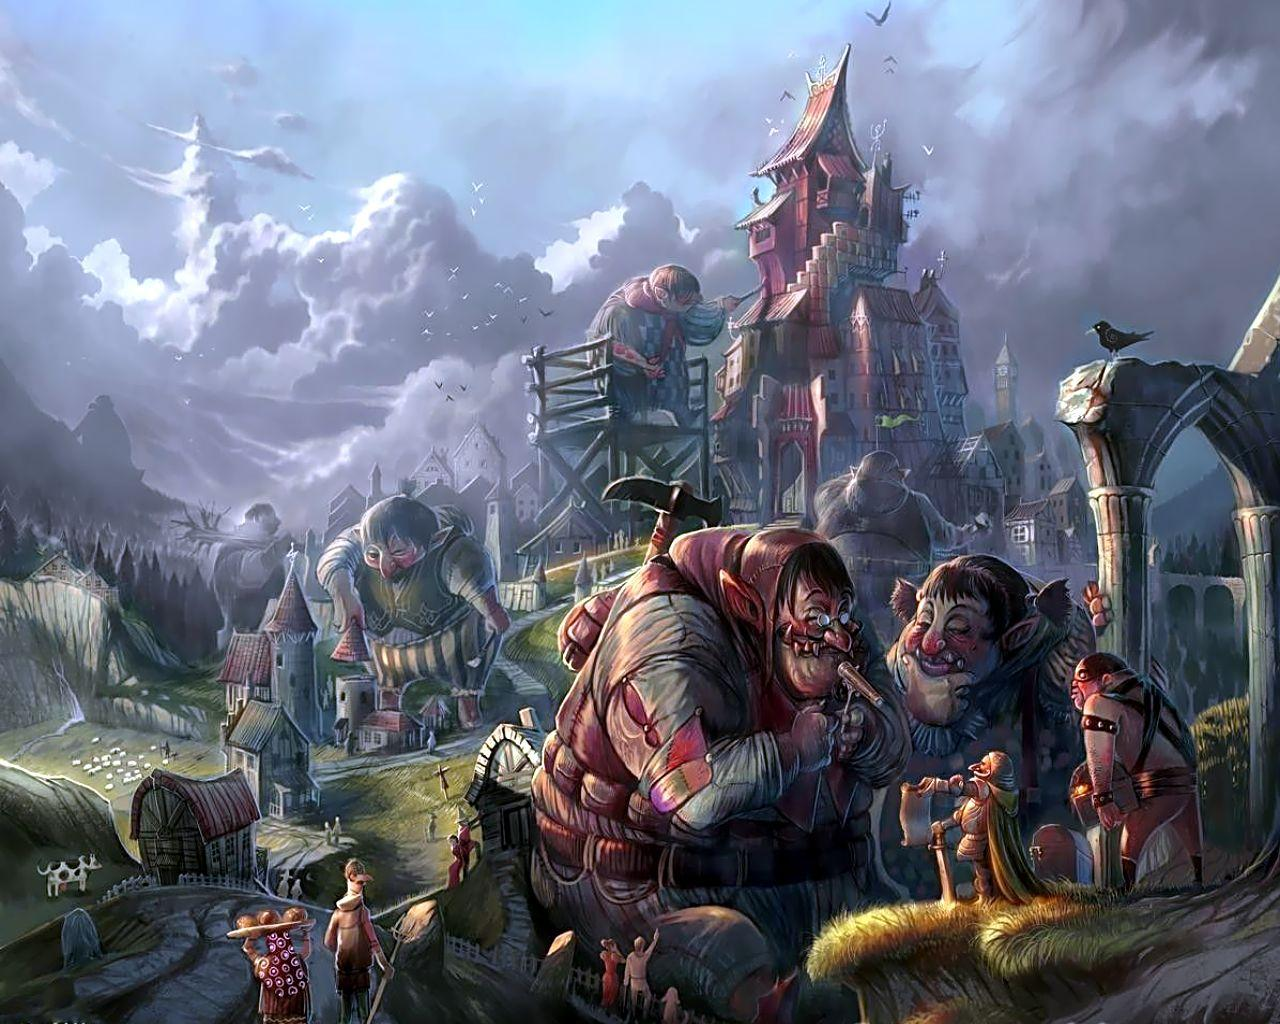 Town Of Dwarfs, Magical Landscapes 2